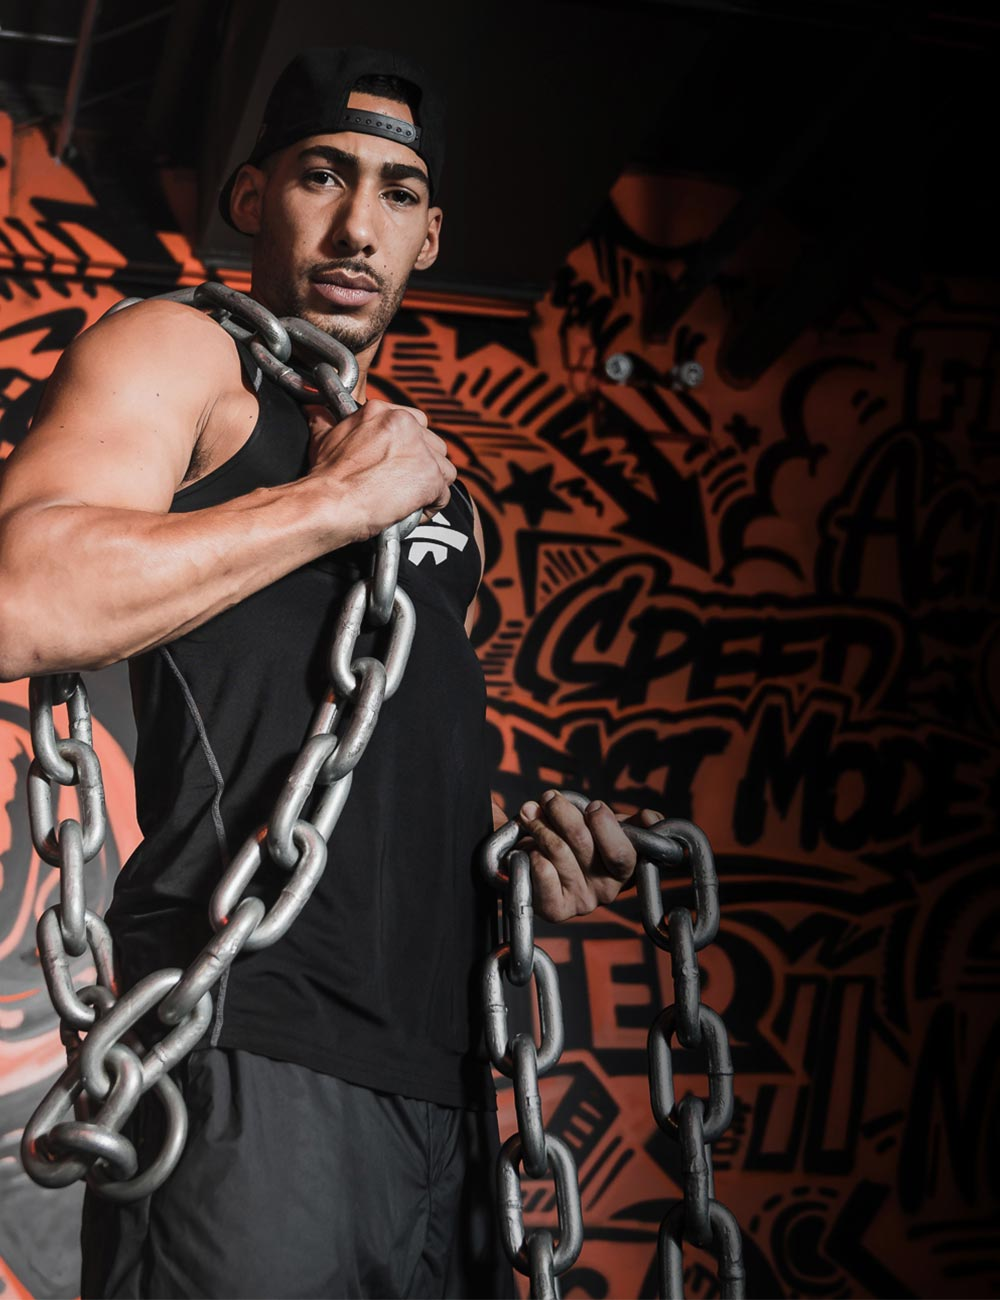 Jeff with chains at Fit Factory Fitness